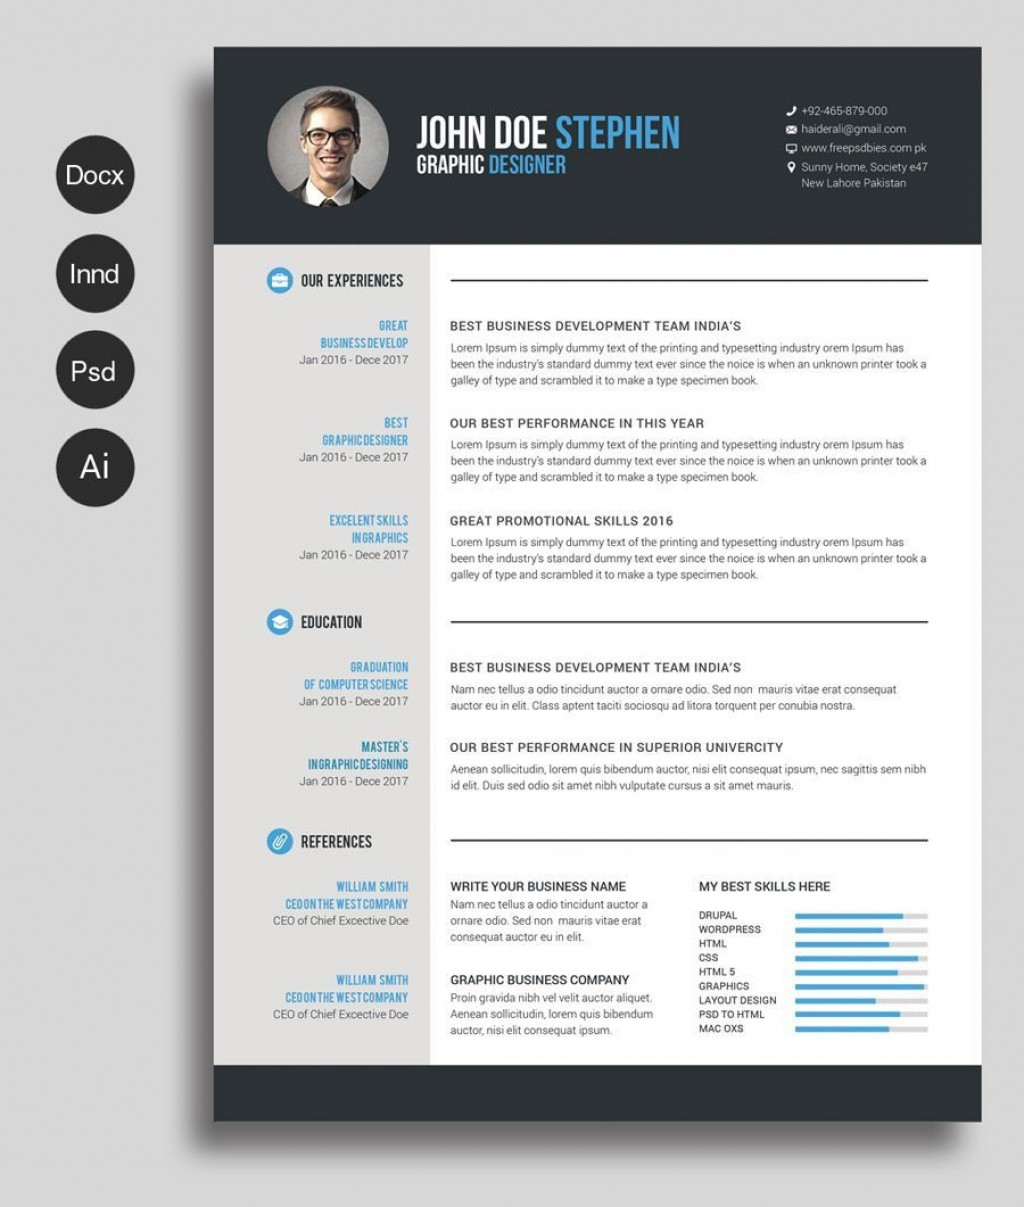 000 Marvelou Free M Word Resume Template Idea  Templates 50 Microsoft For Download 2019Large